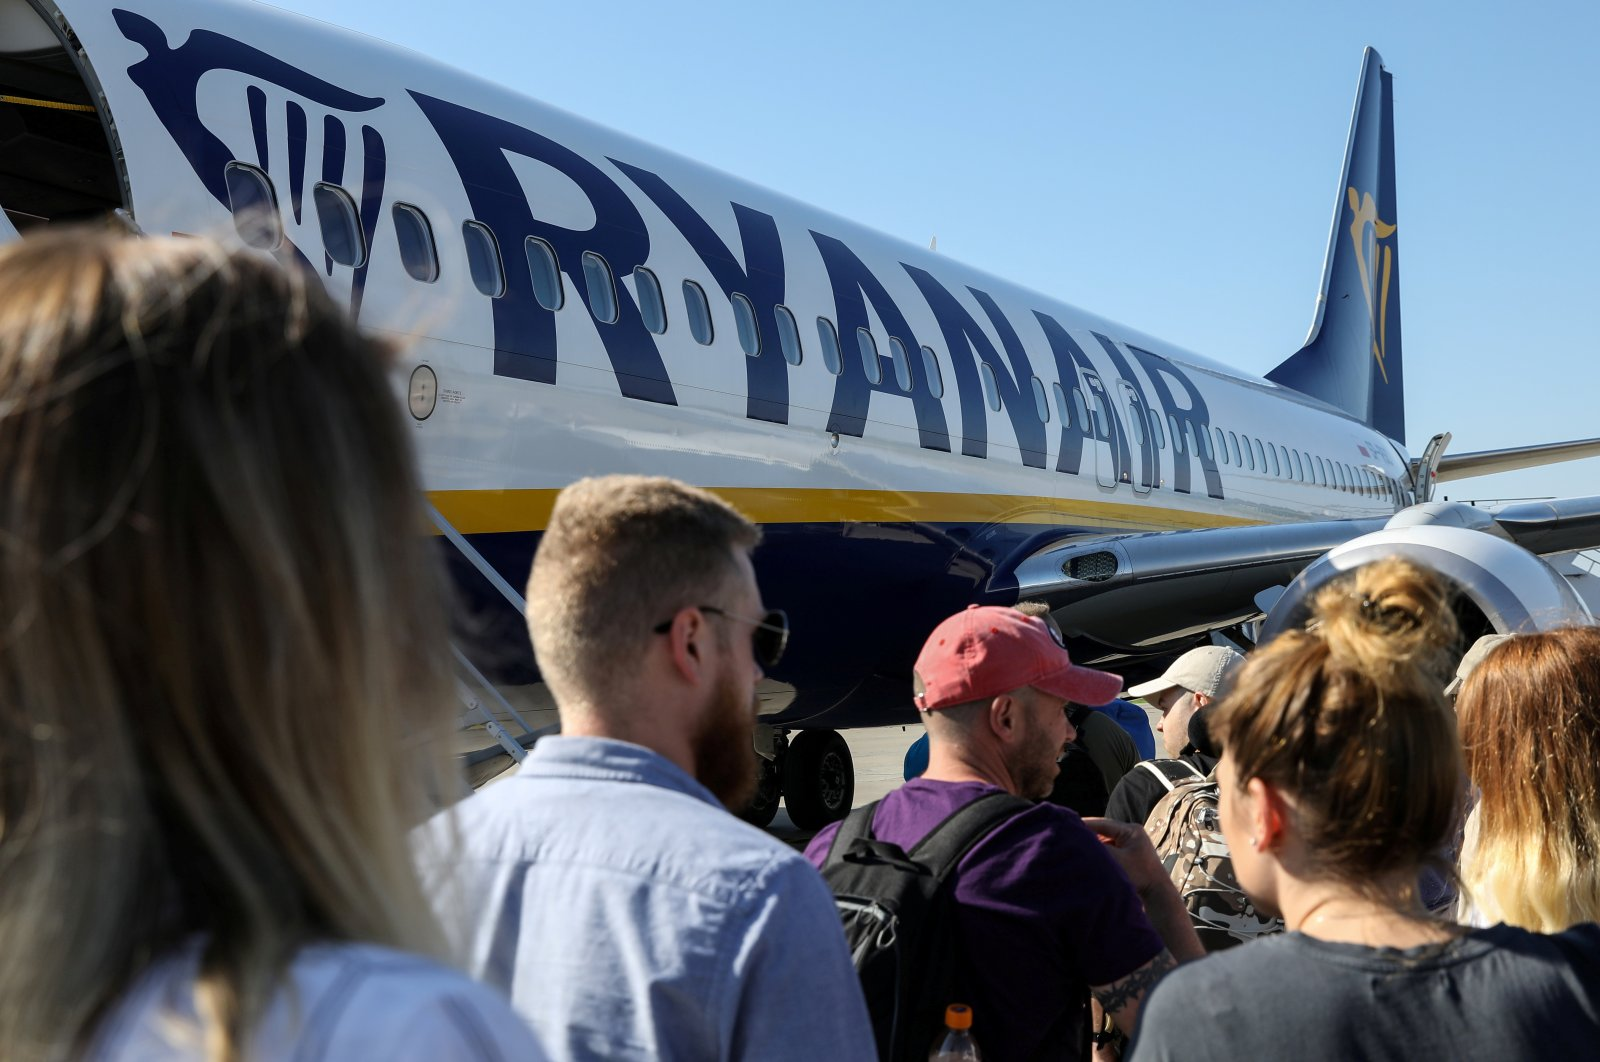 Passengers board a Ryanair flight in Gdansk, Poland, June 19, 2019. (Reuters Photo)